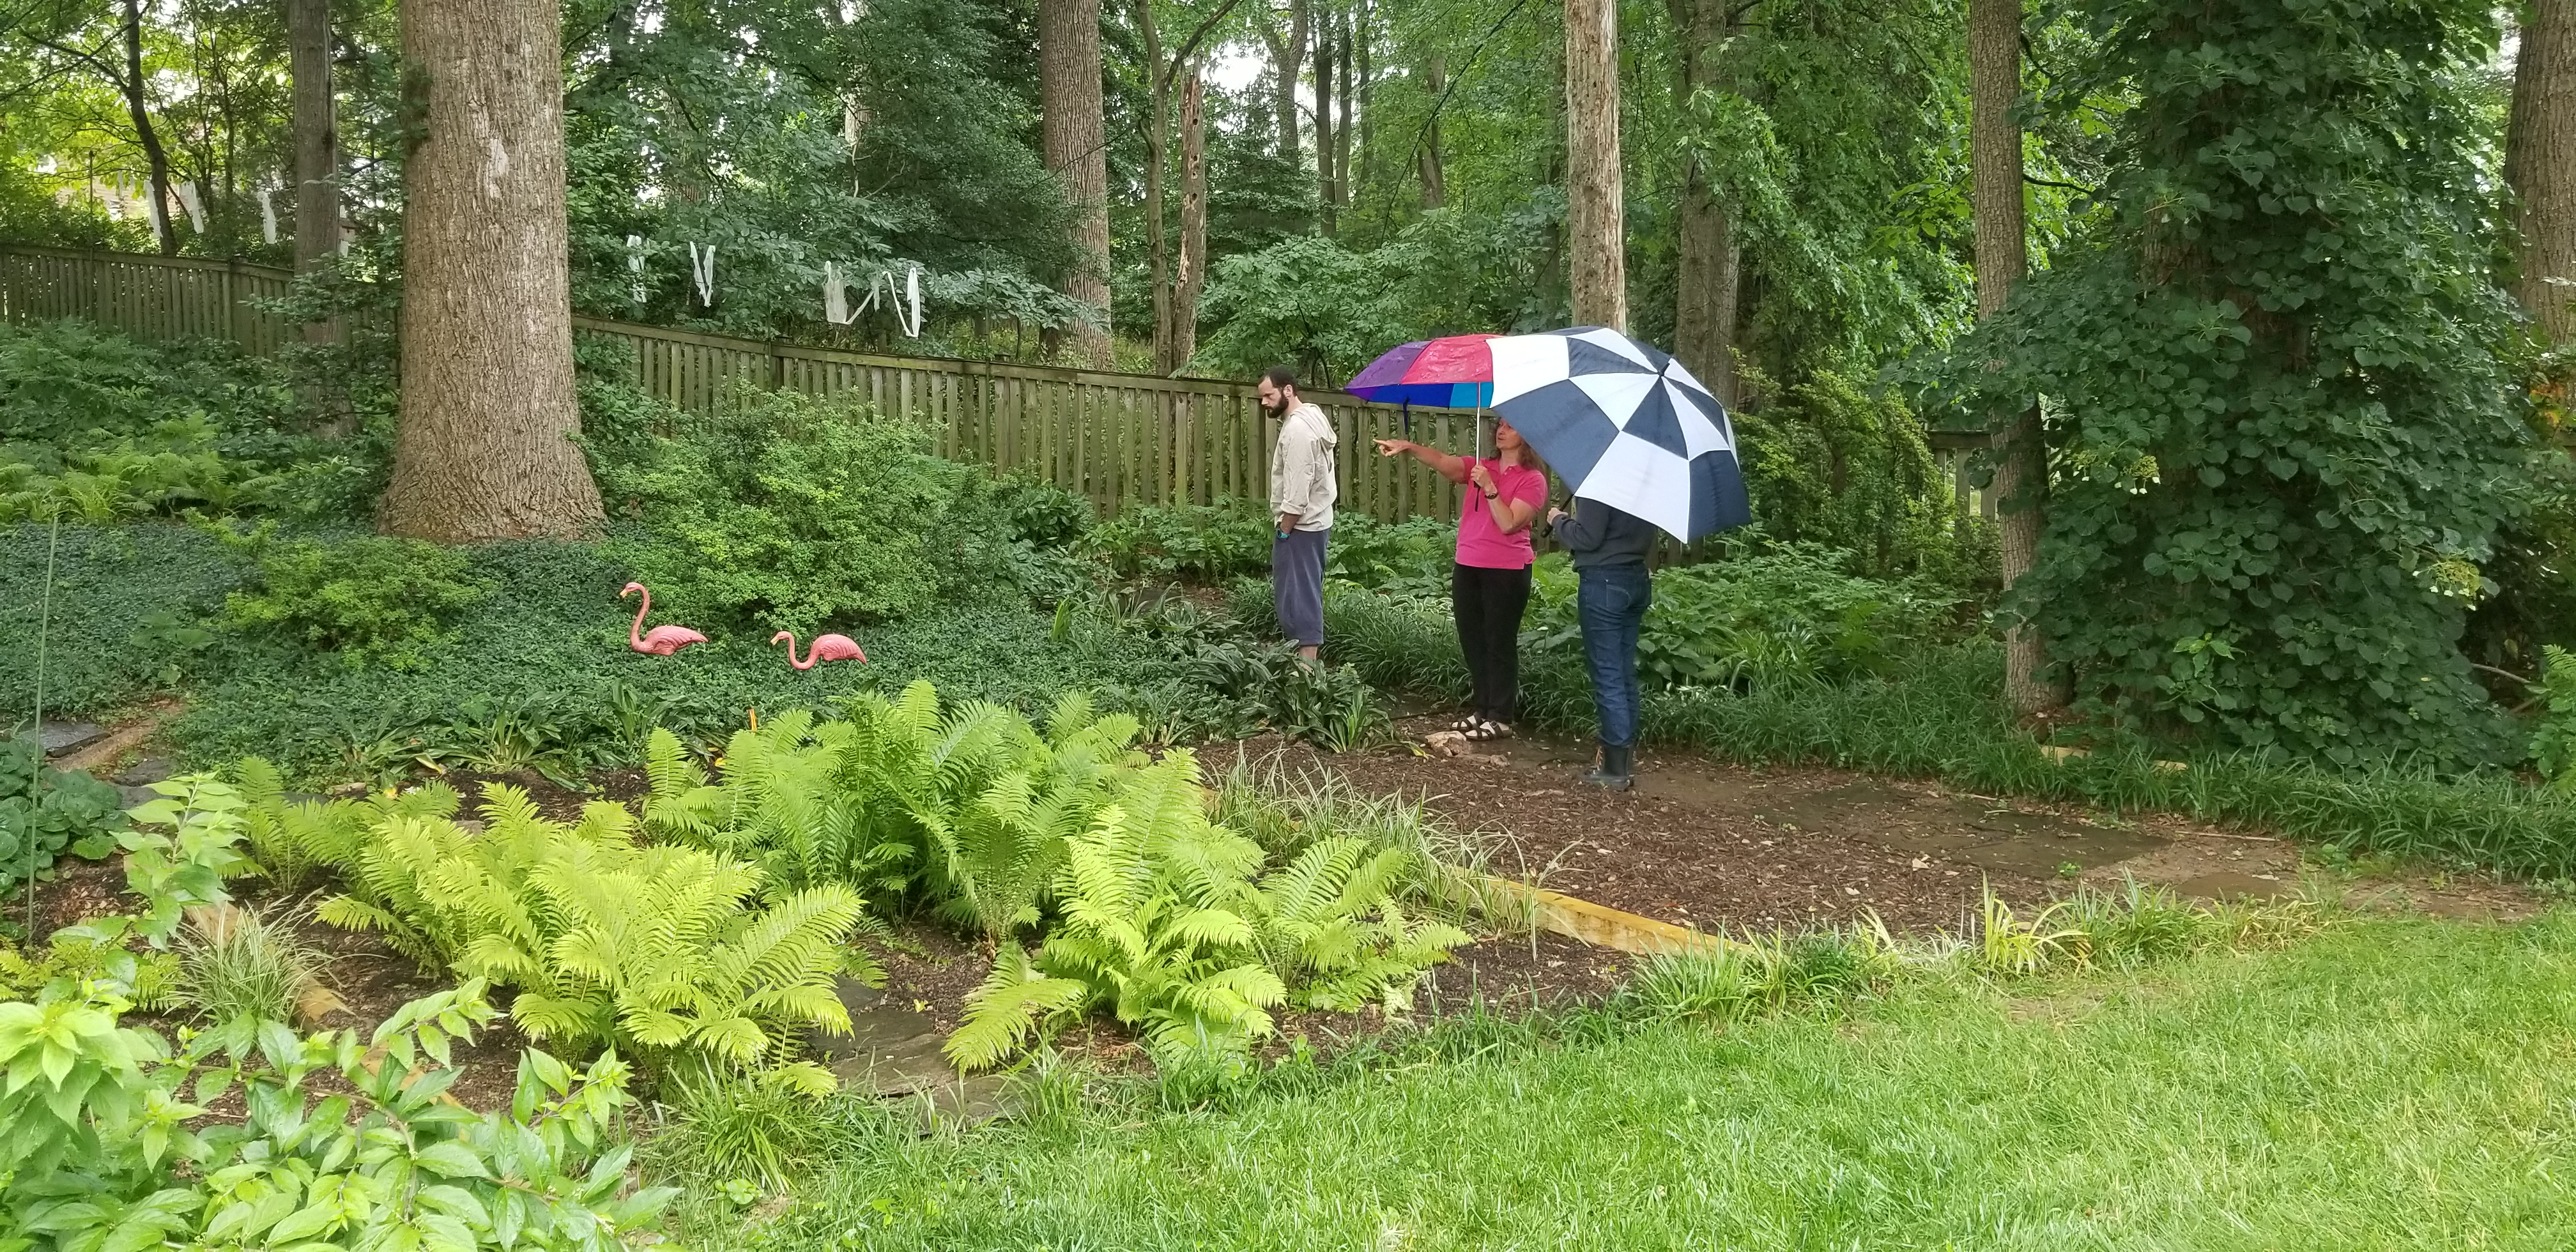 One homeowner showed how they used native plants to control erosion on a slope.